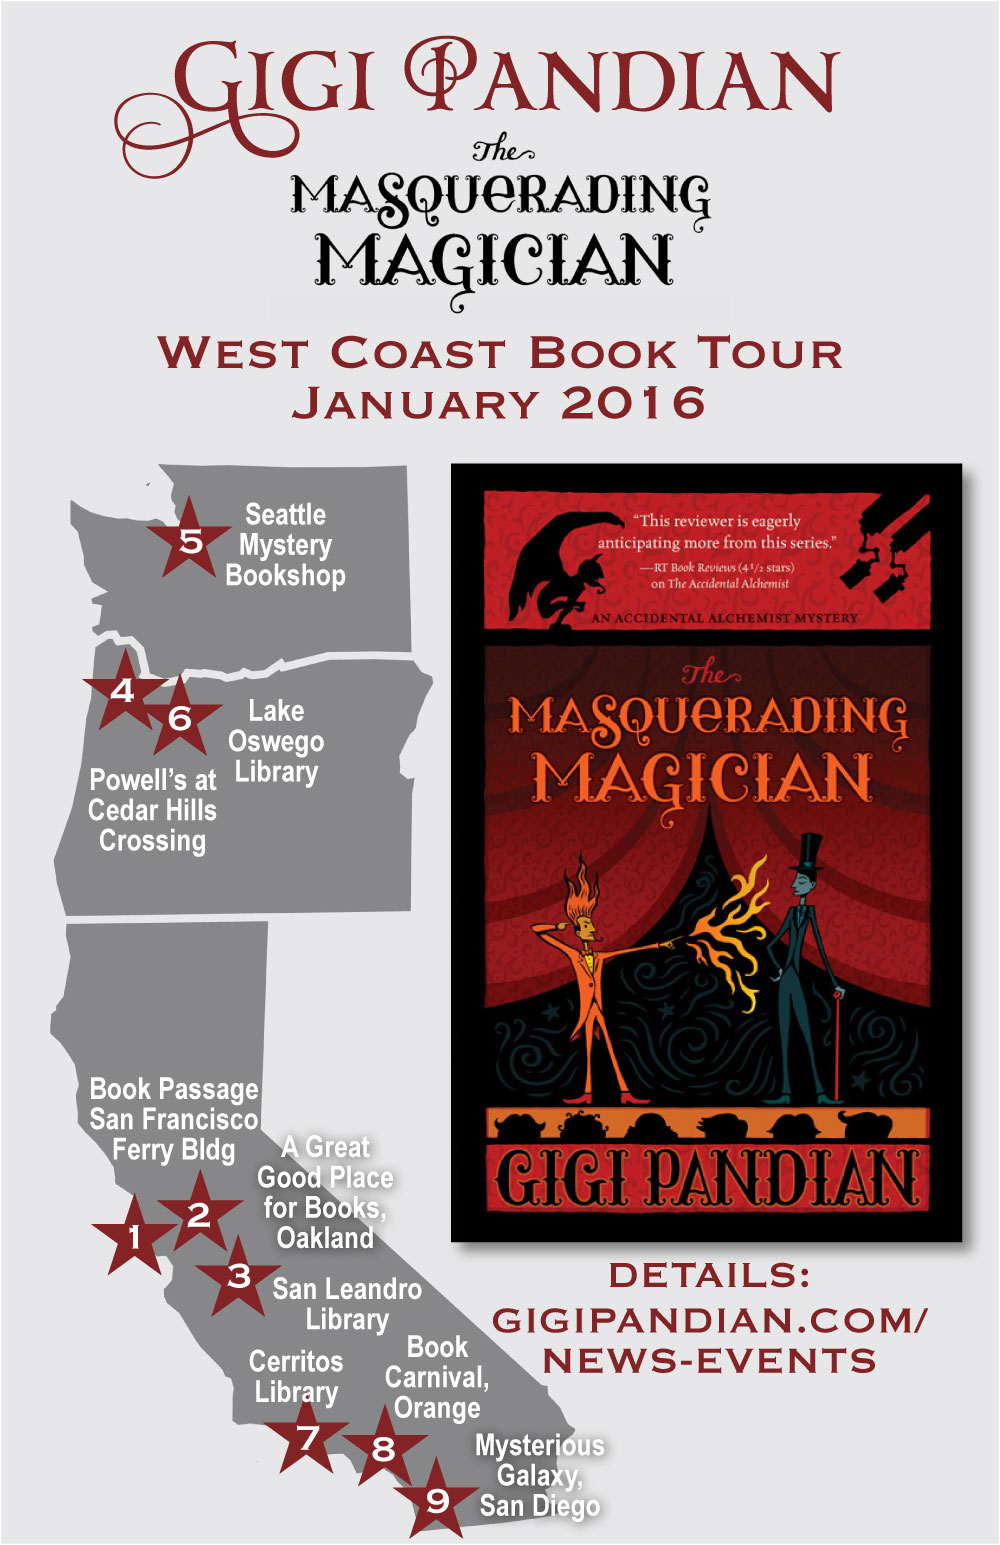 Masquerading-Magician-book-tour-West-Coast-graphic-Jan-2016-vertical-web.jpg